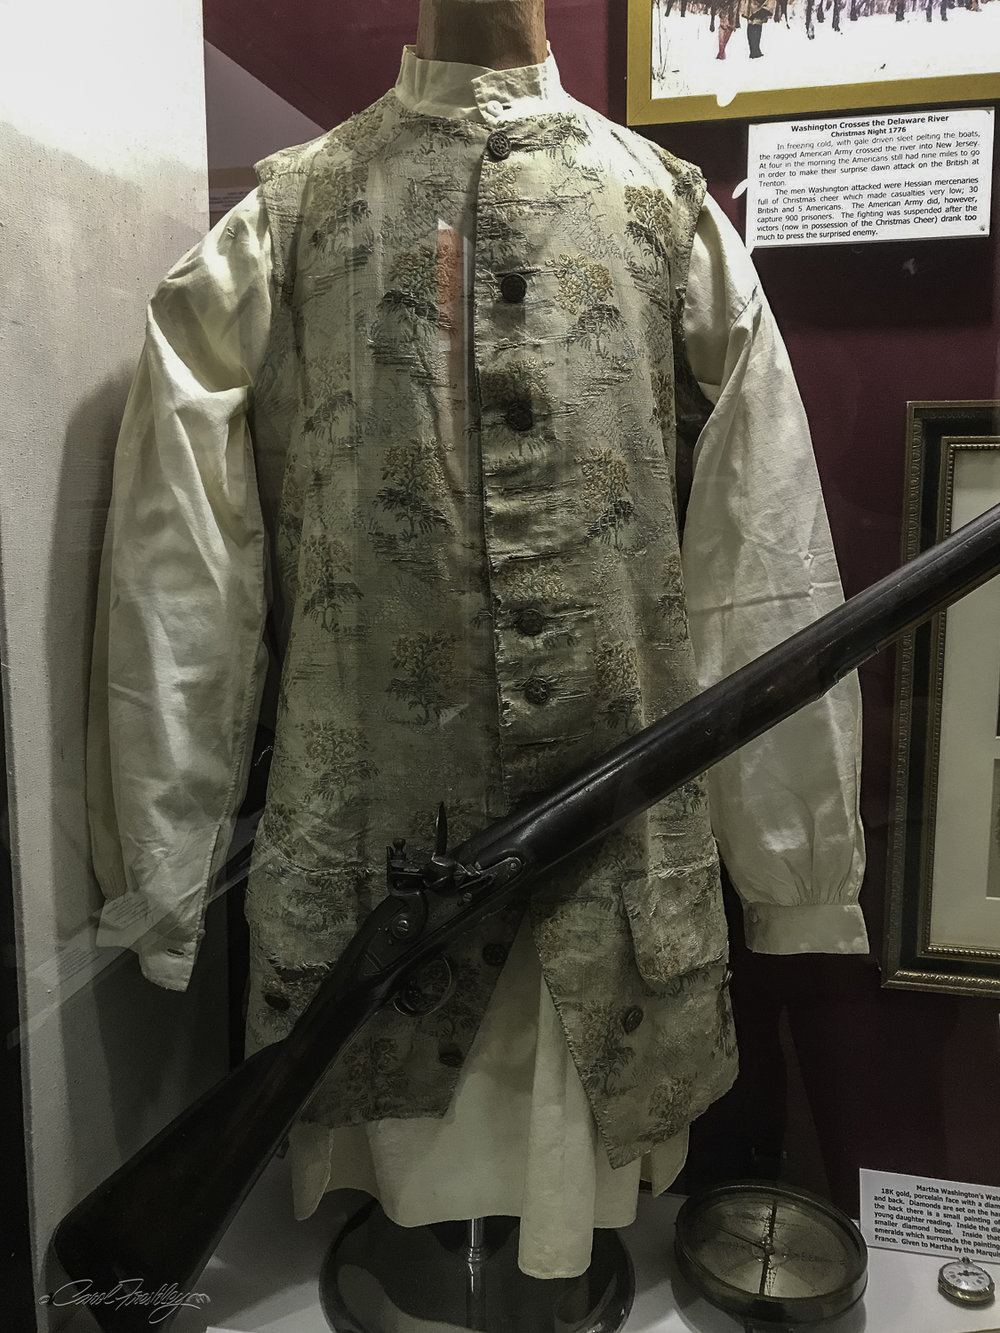 Shown is the Waist Coat worn by John Floyd while Governor of Virginia, 1830-1834. He was the father of John Buchanan Floyd who was the 31st Virginia Governor between 1849 and 1852.